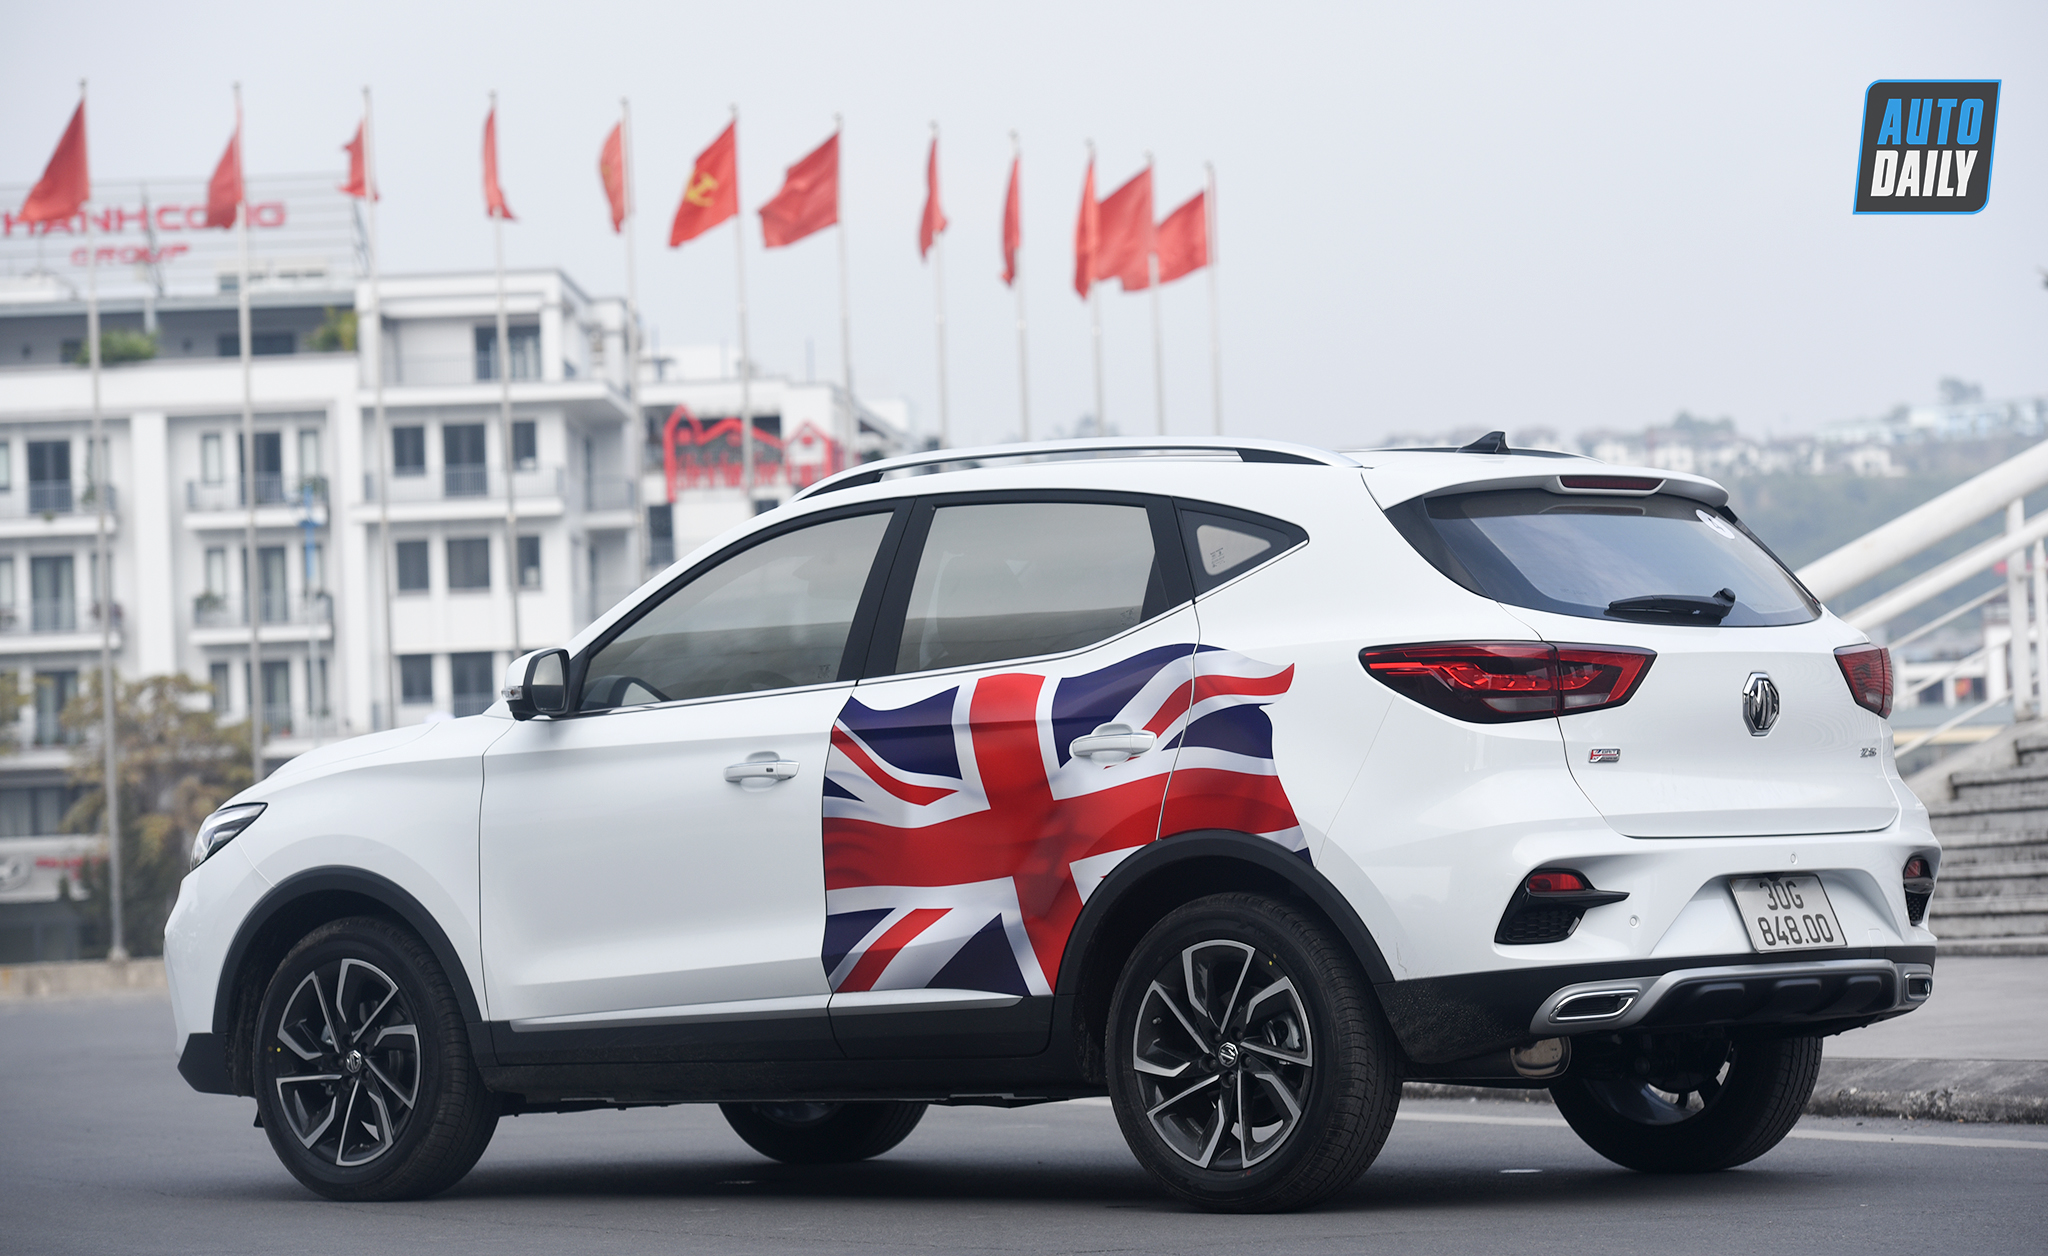 MG ZS 2021 evaluation: A reasonable choice of 600 million VND 11.jpg